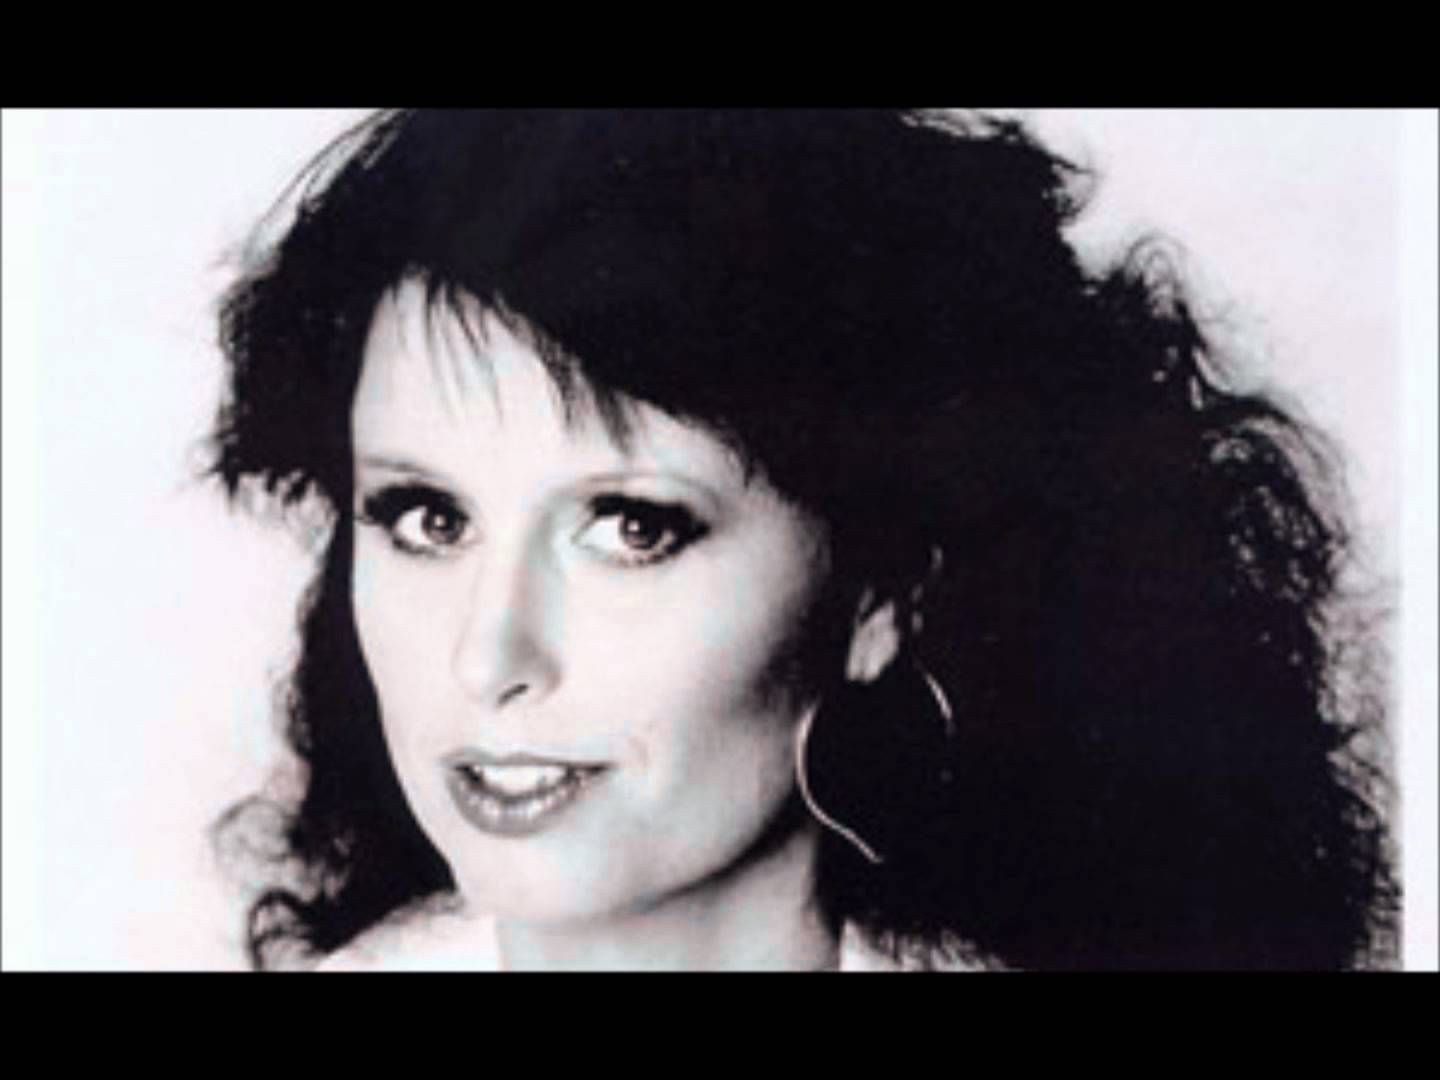 oldies but goldies - Jessi  Colter - Why You Been Gone So Long